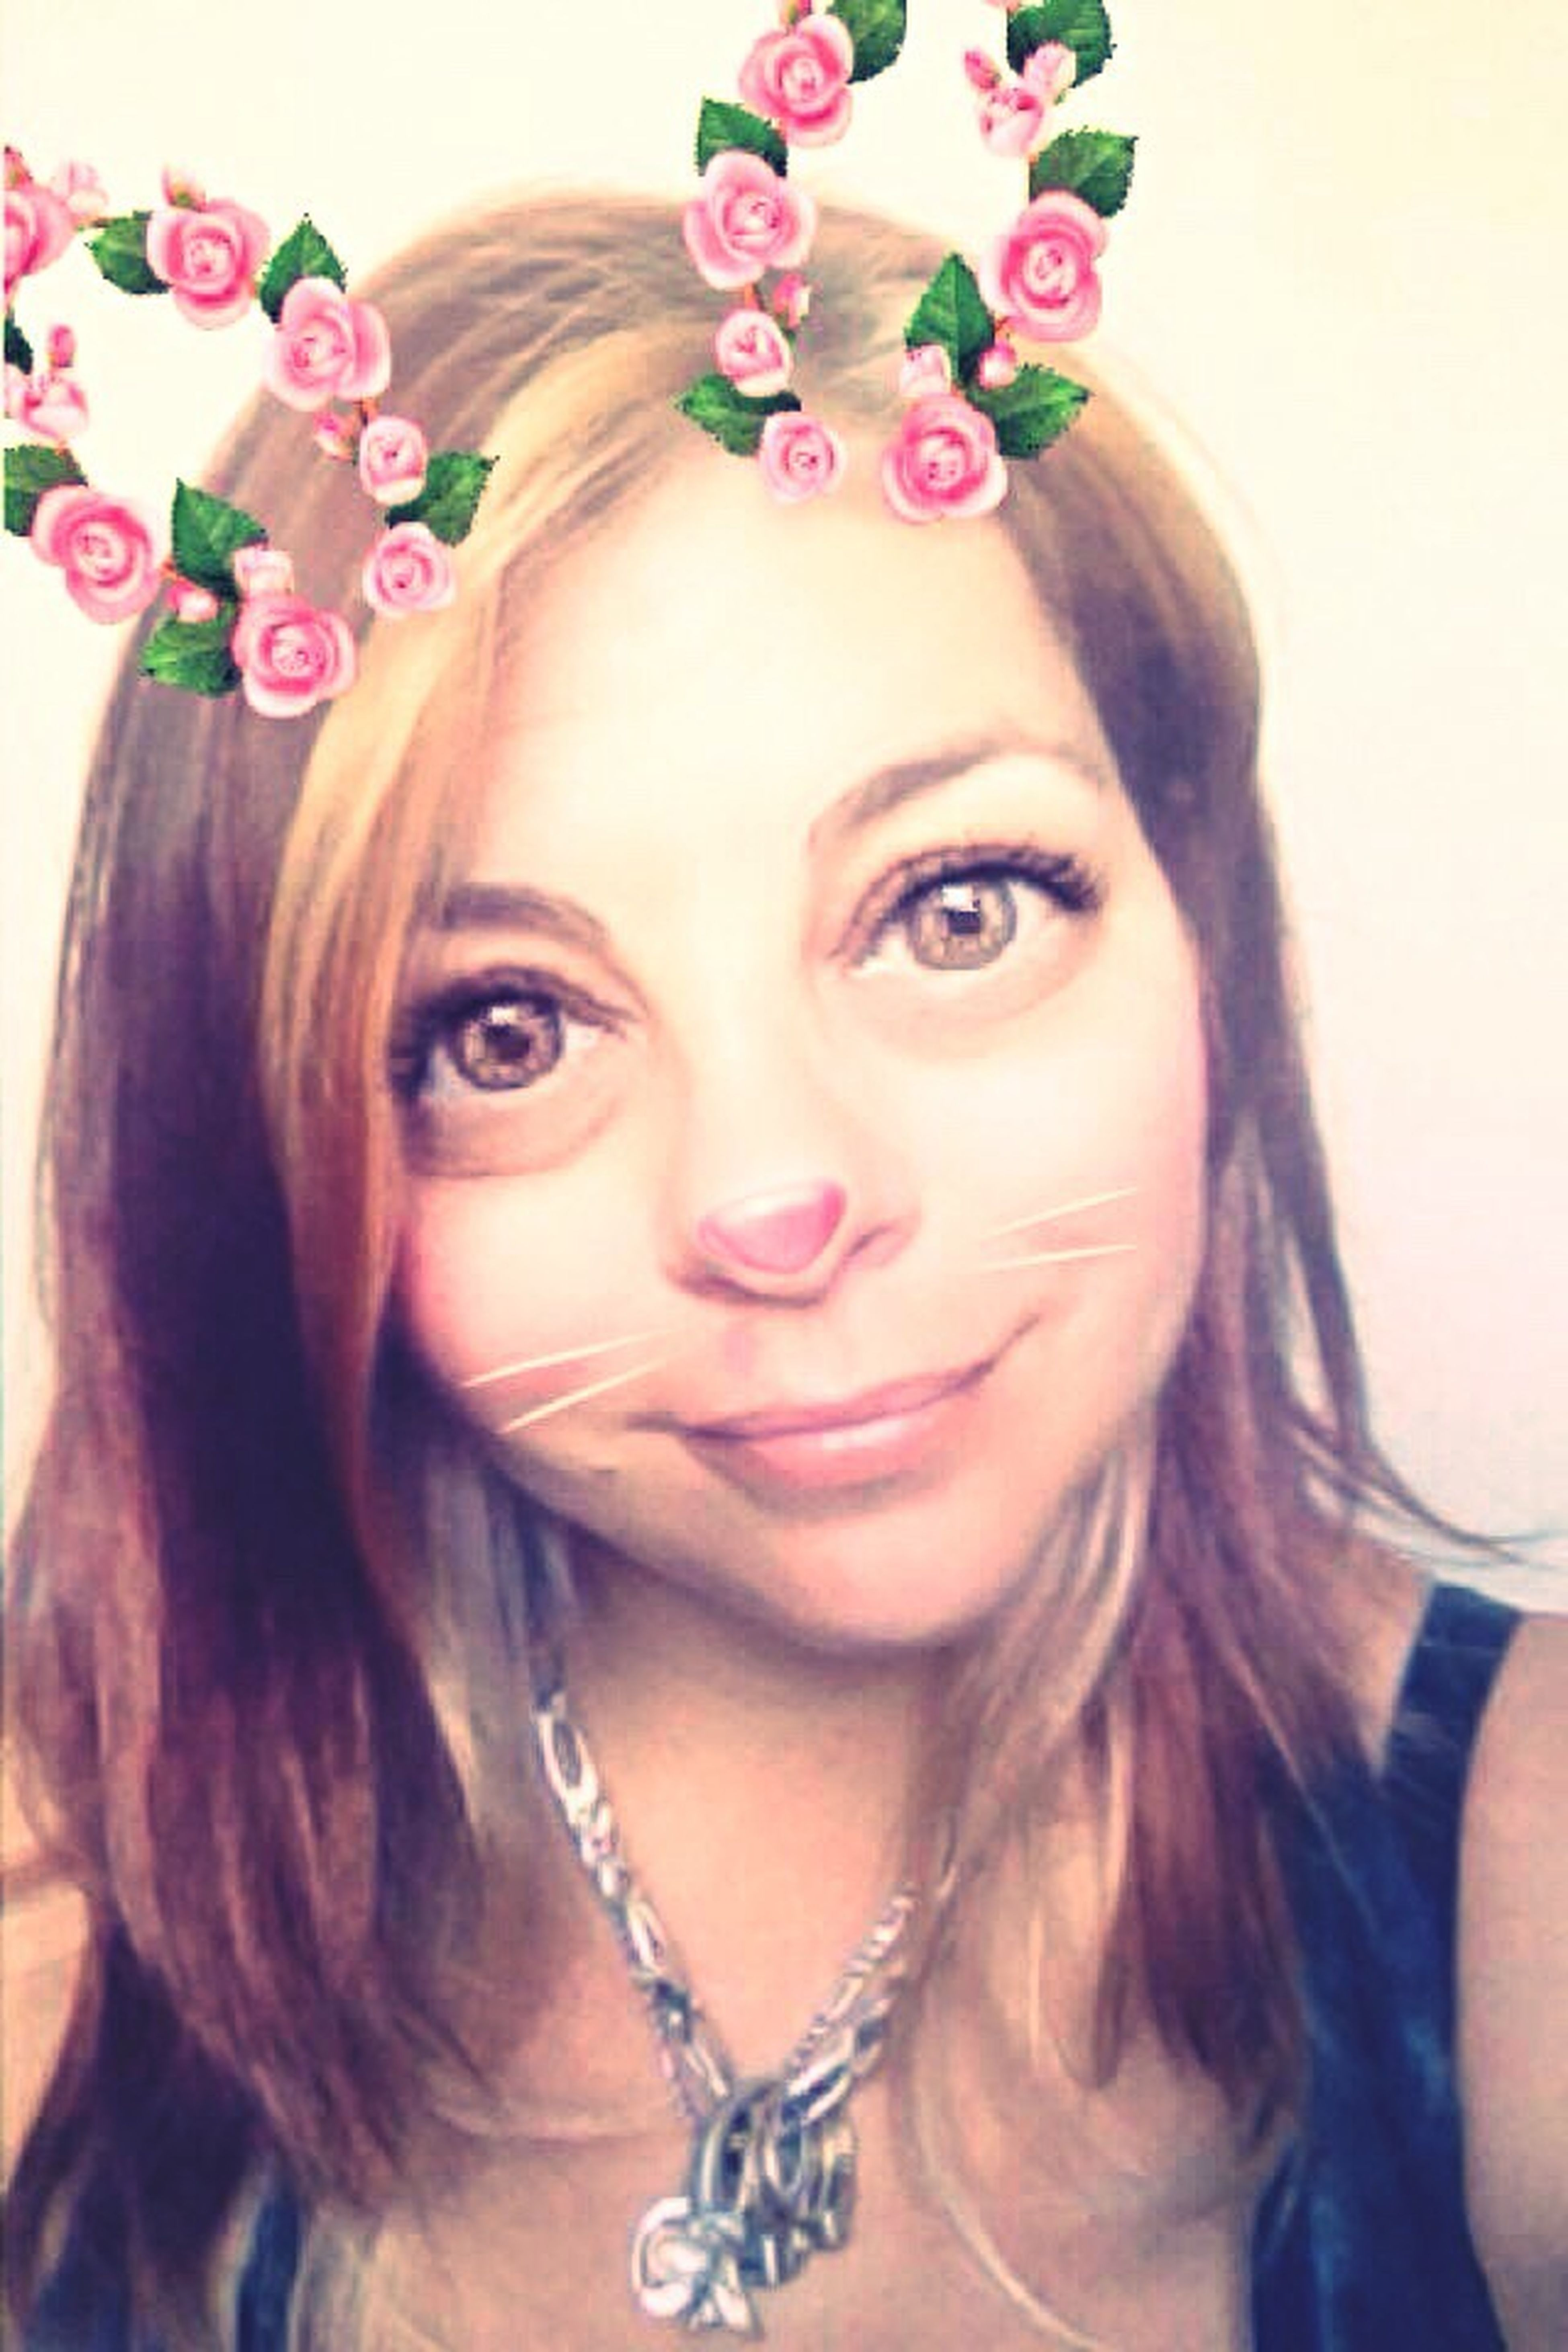 Selfie snapchat filter fun time 😉😍 keepin it 💯 Front View JustMe Young Adult One Person I Am Woman Hear Me RAWR 😘